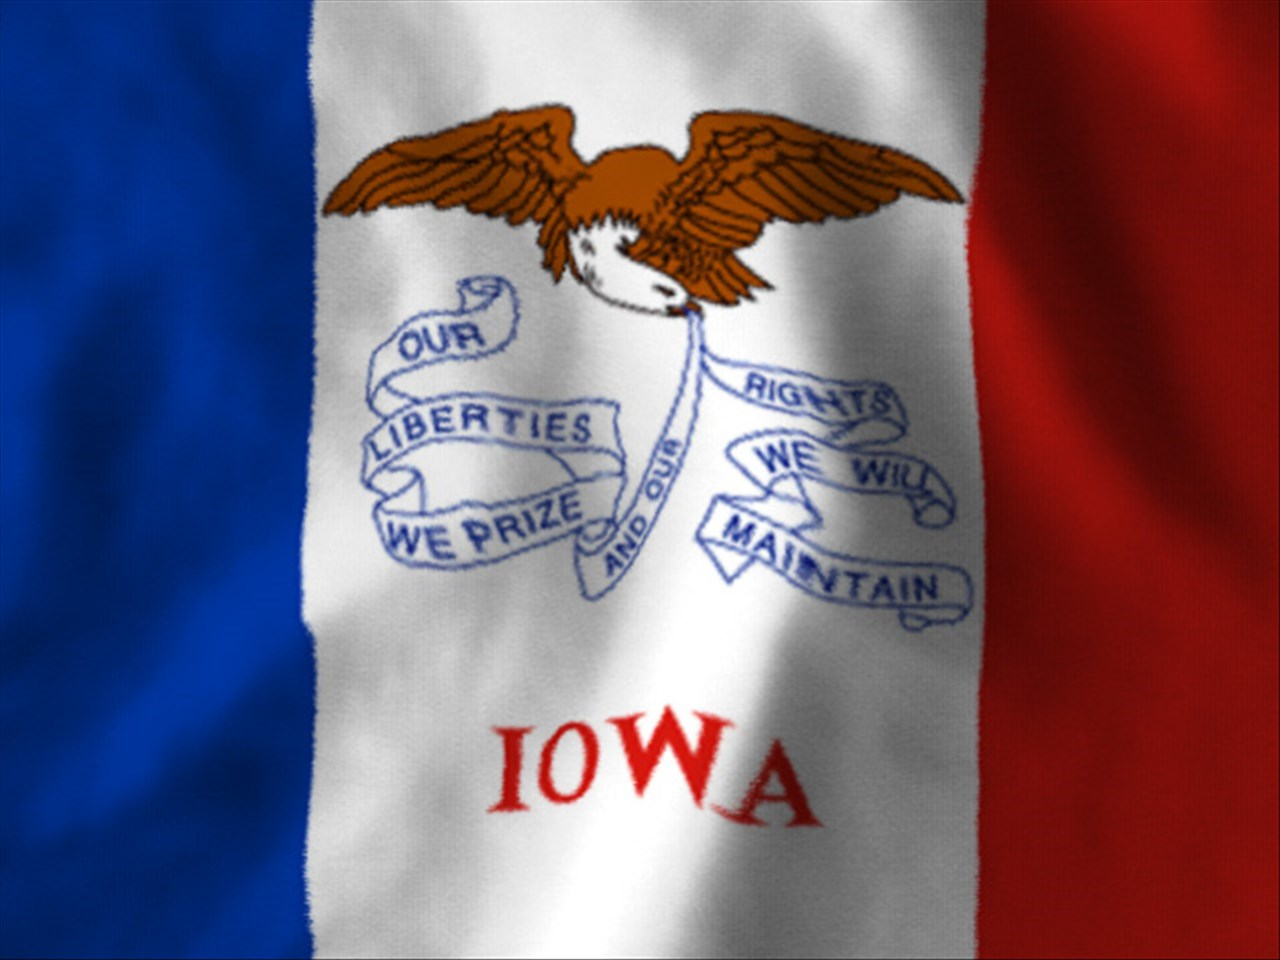 Iowa Flag_1543251574173.jpeg.jpg